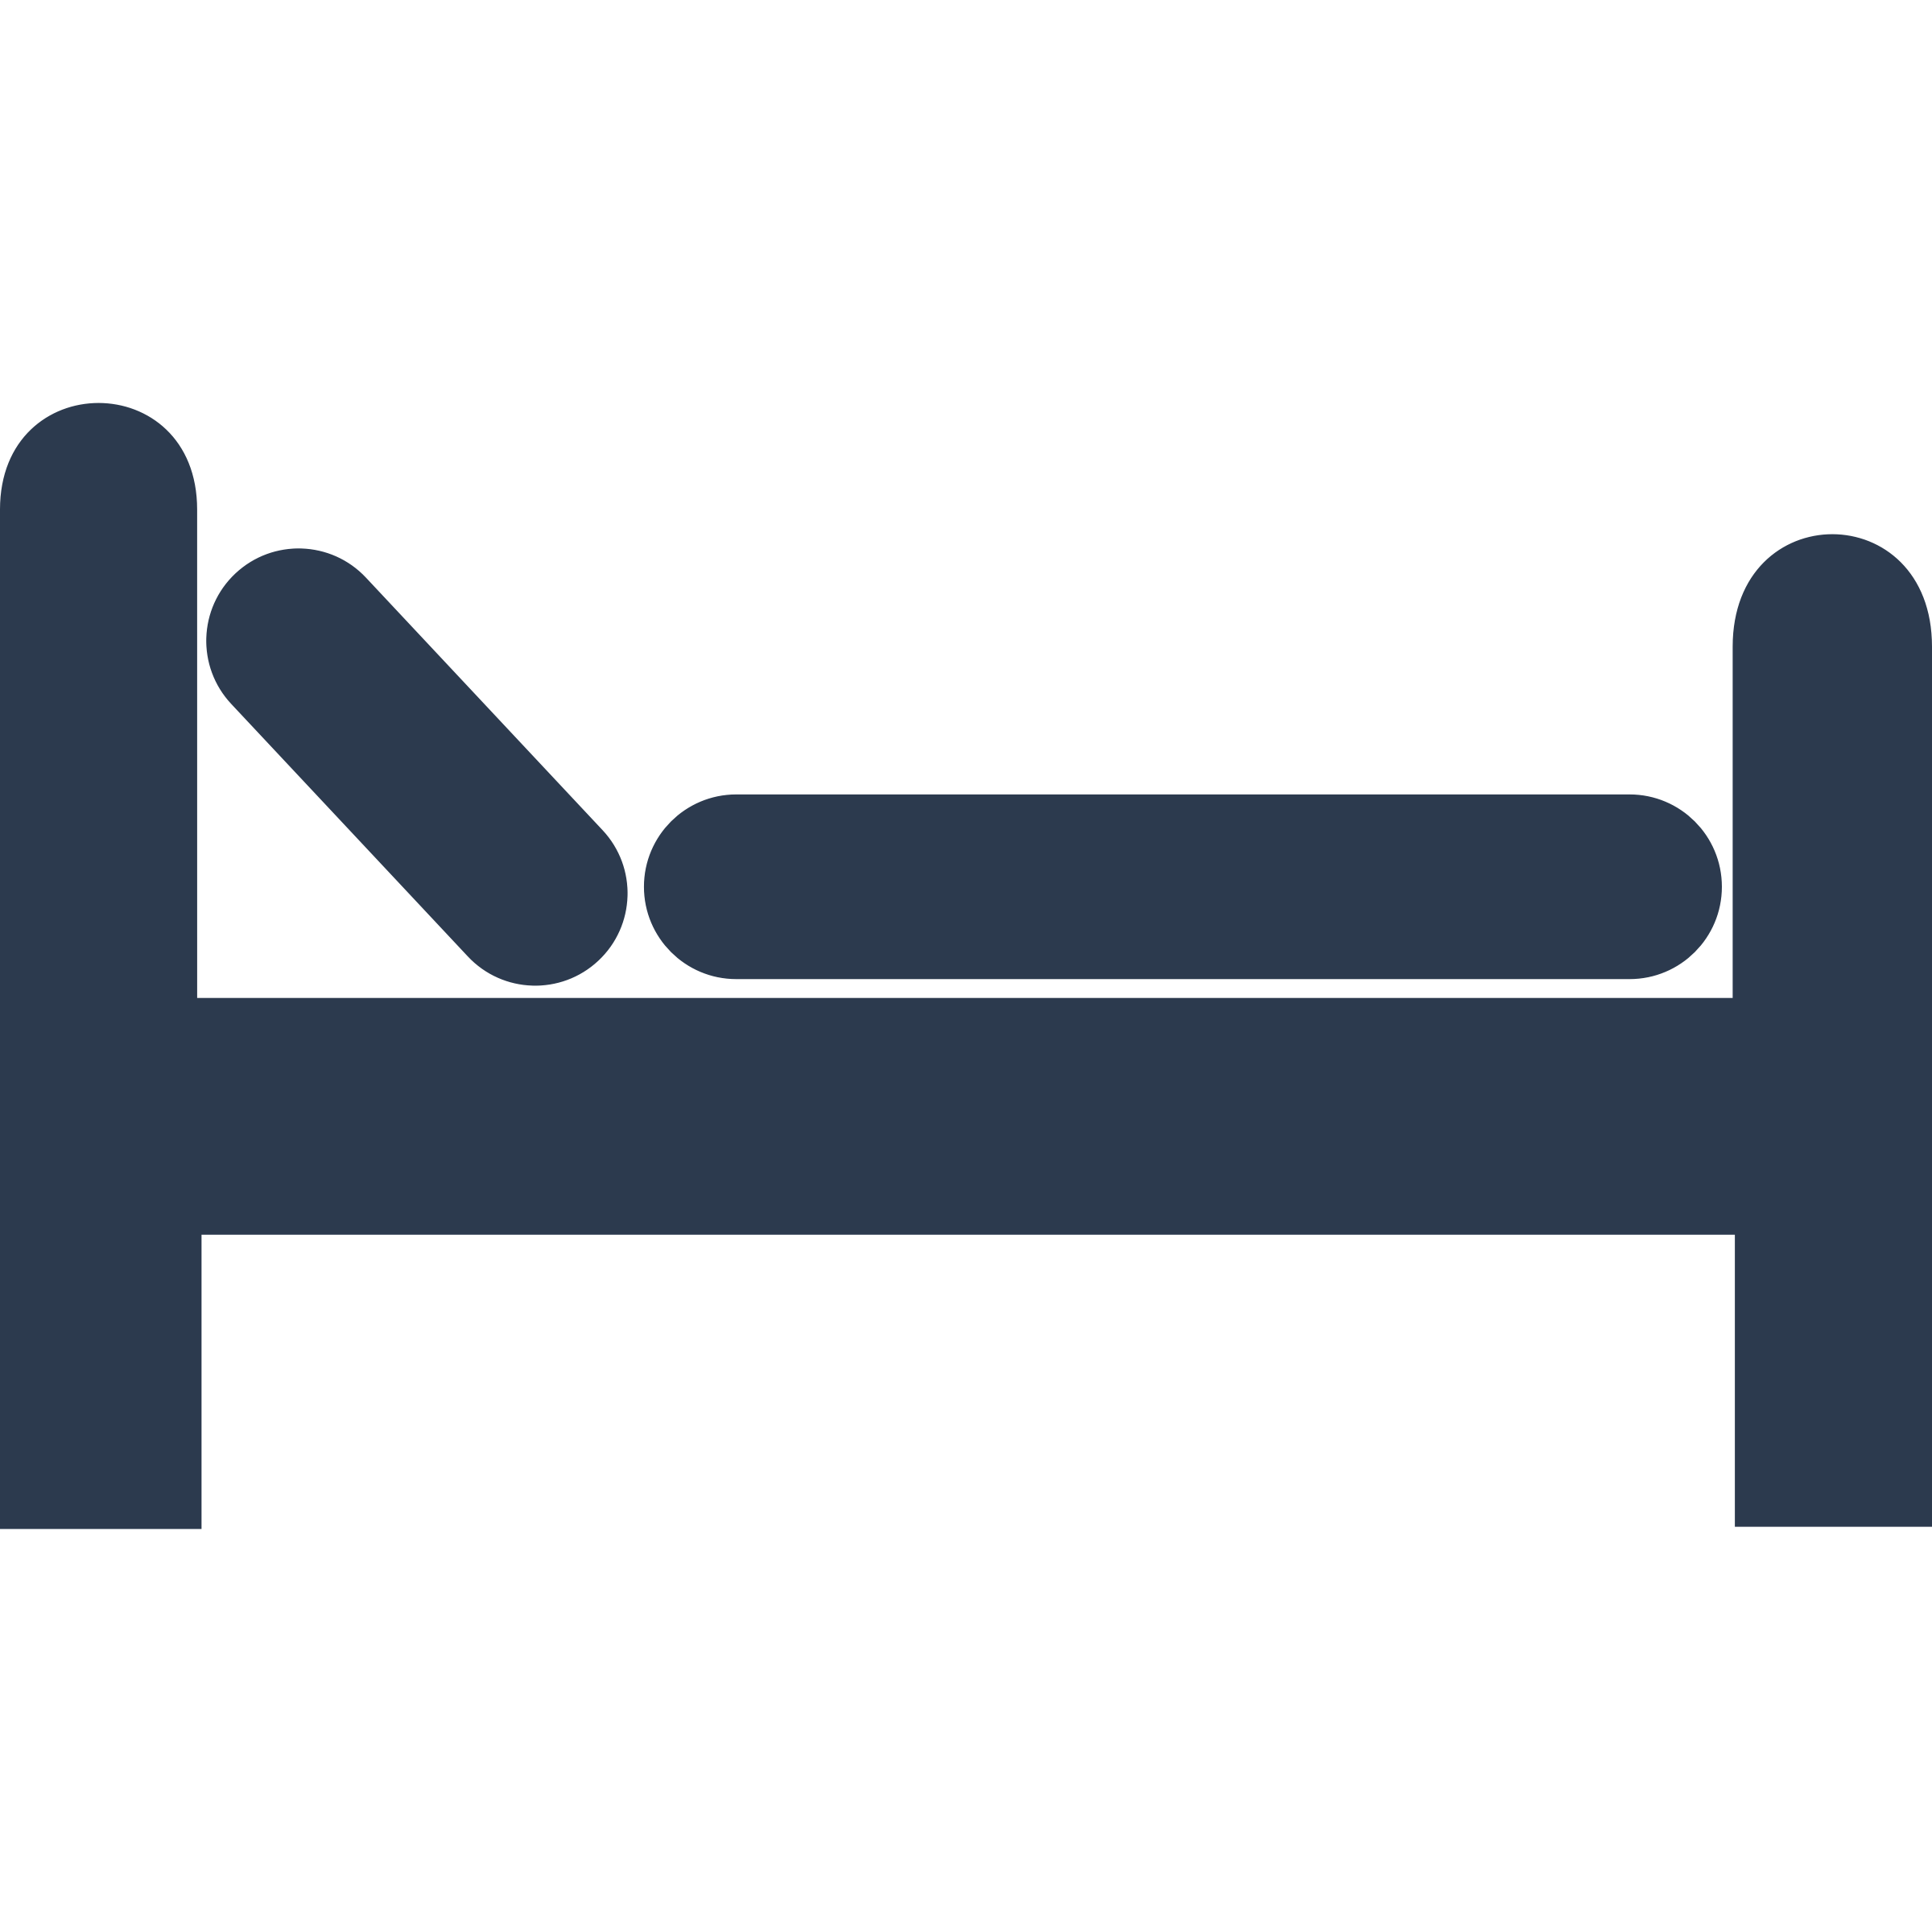 bedroom clipart simple